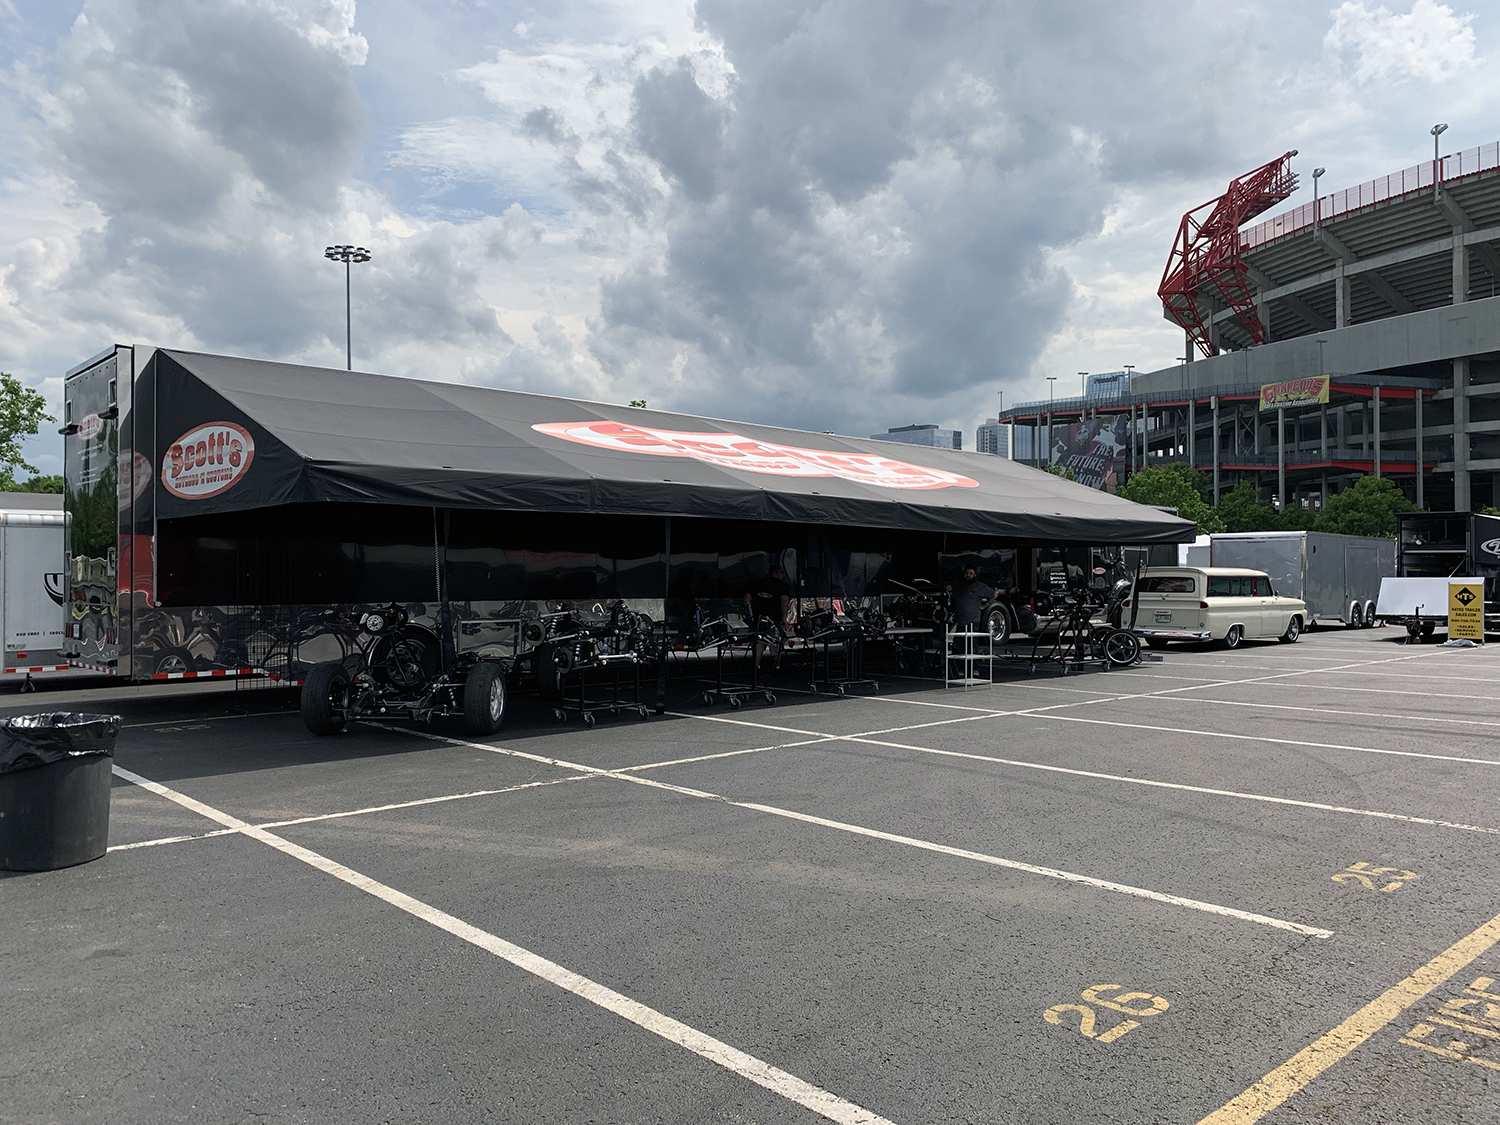 scotts-hotrods-good-guys-nashville-2019-13